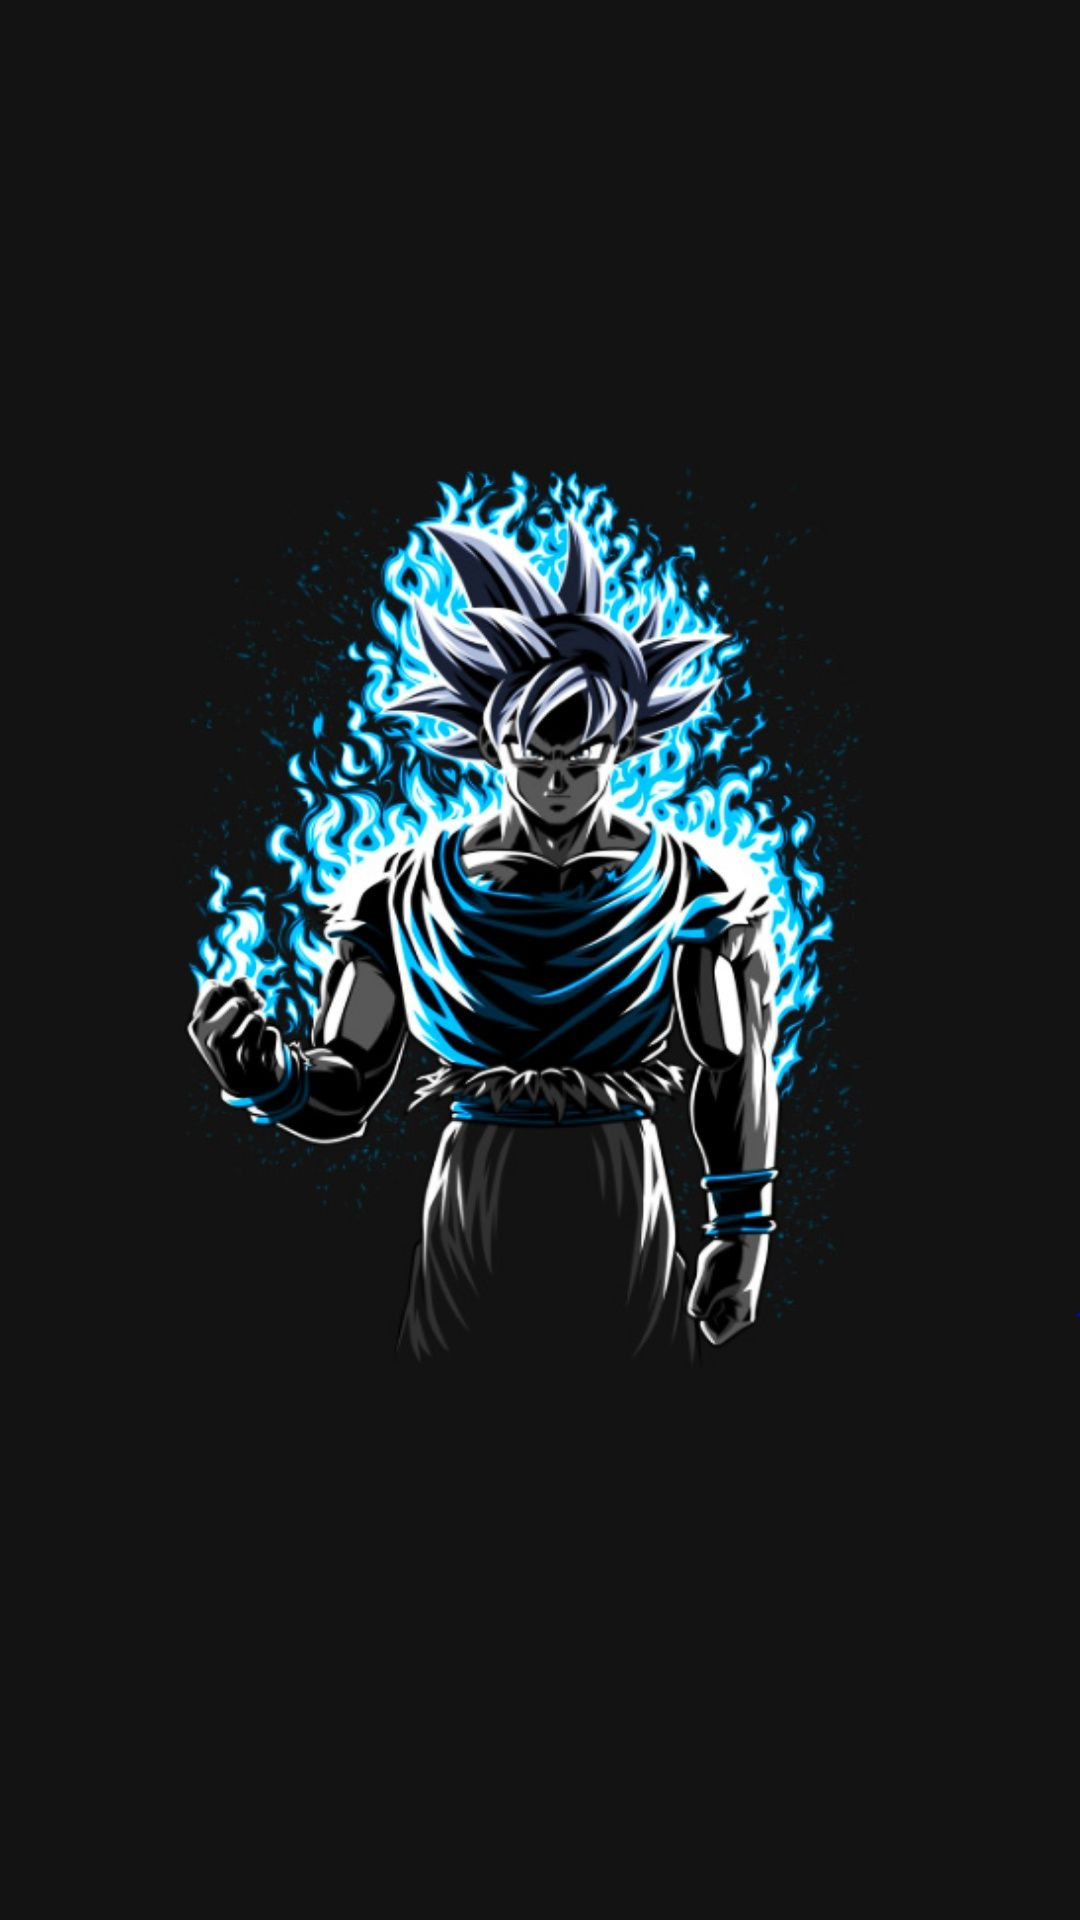 Amoled Anime Wallpapers Dragon Ball Super Artwork Dragon Ball Art Dragon Ball Artwork